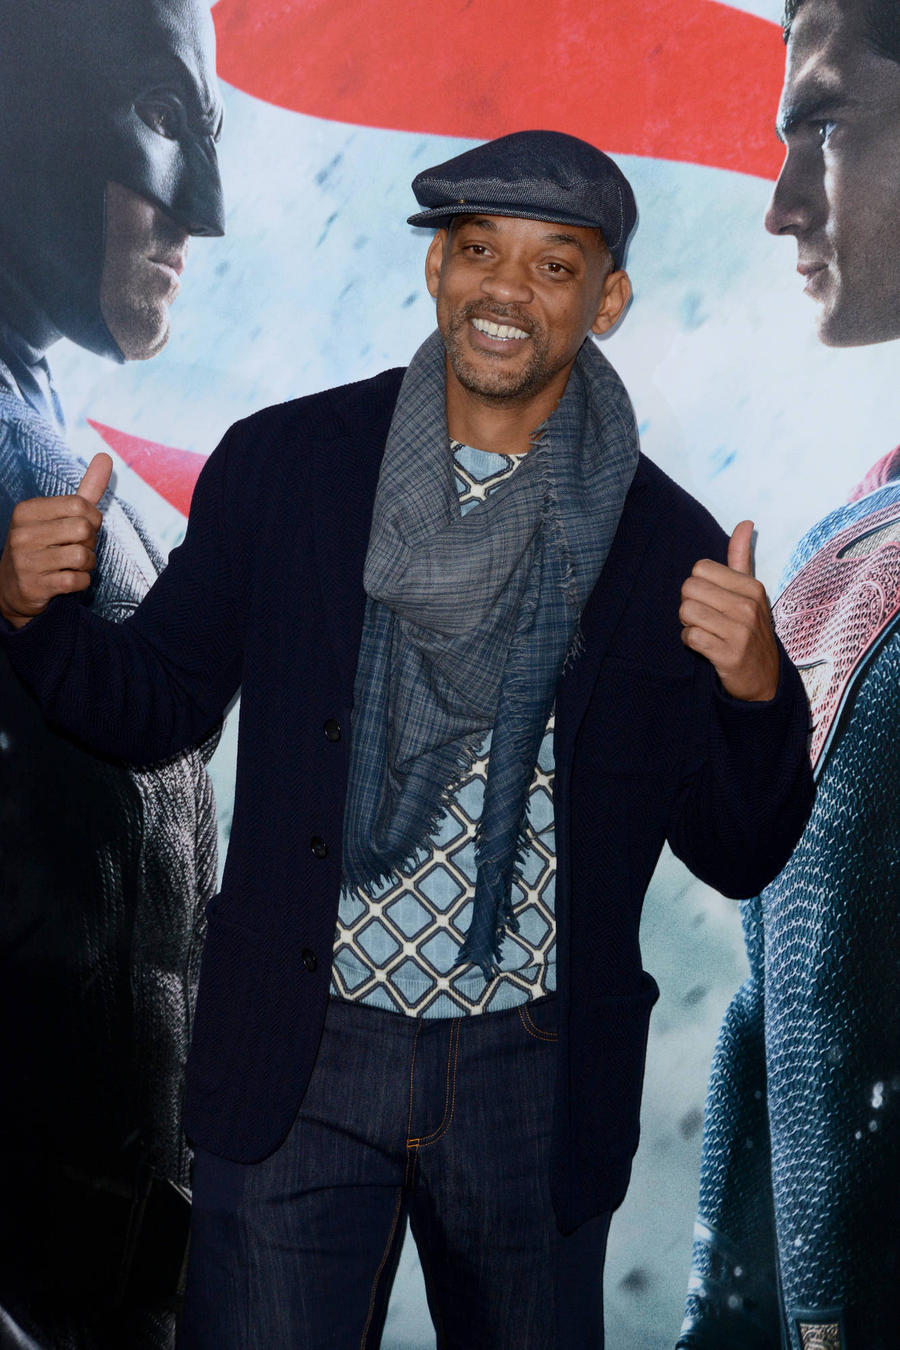 Will Smith Forgets Men In Black Lyrics During Impromptu Performance